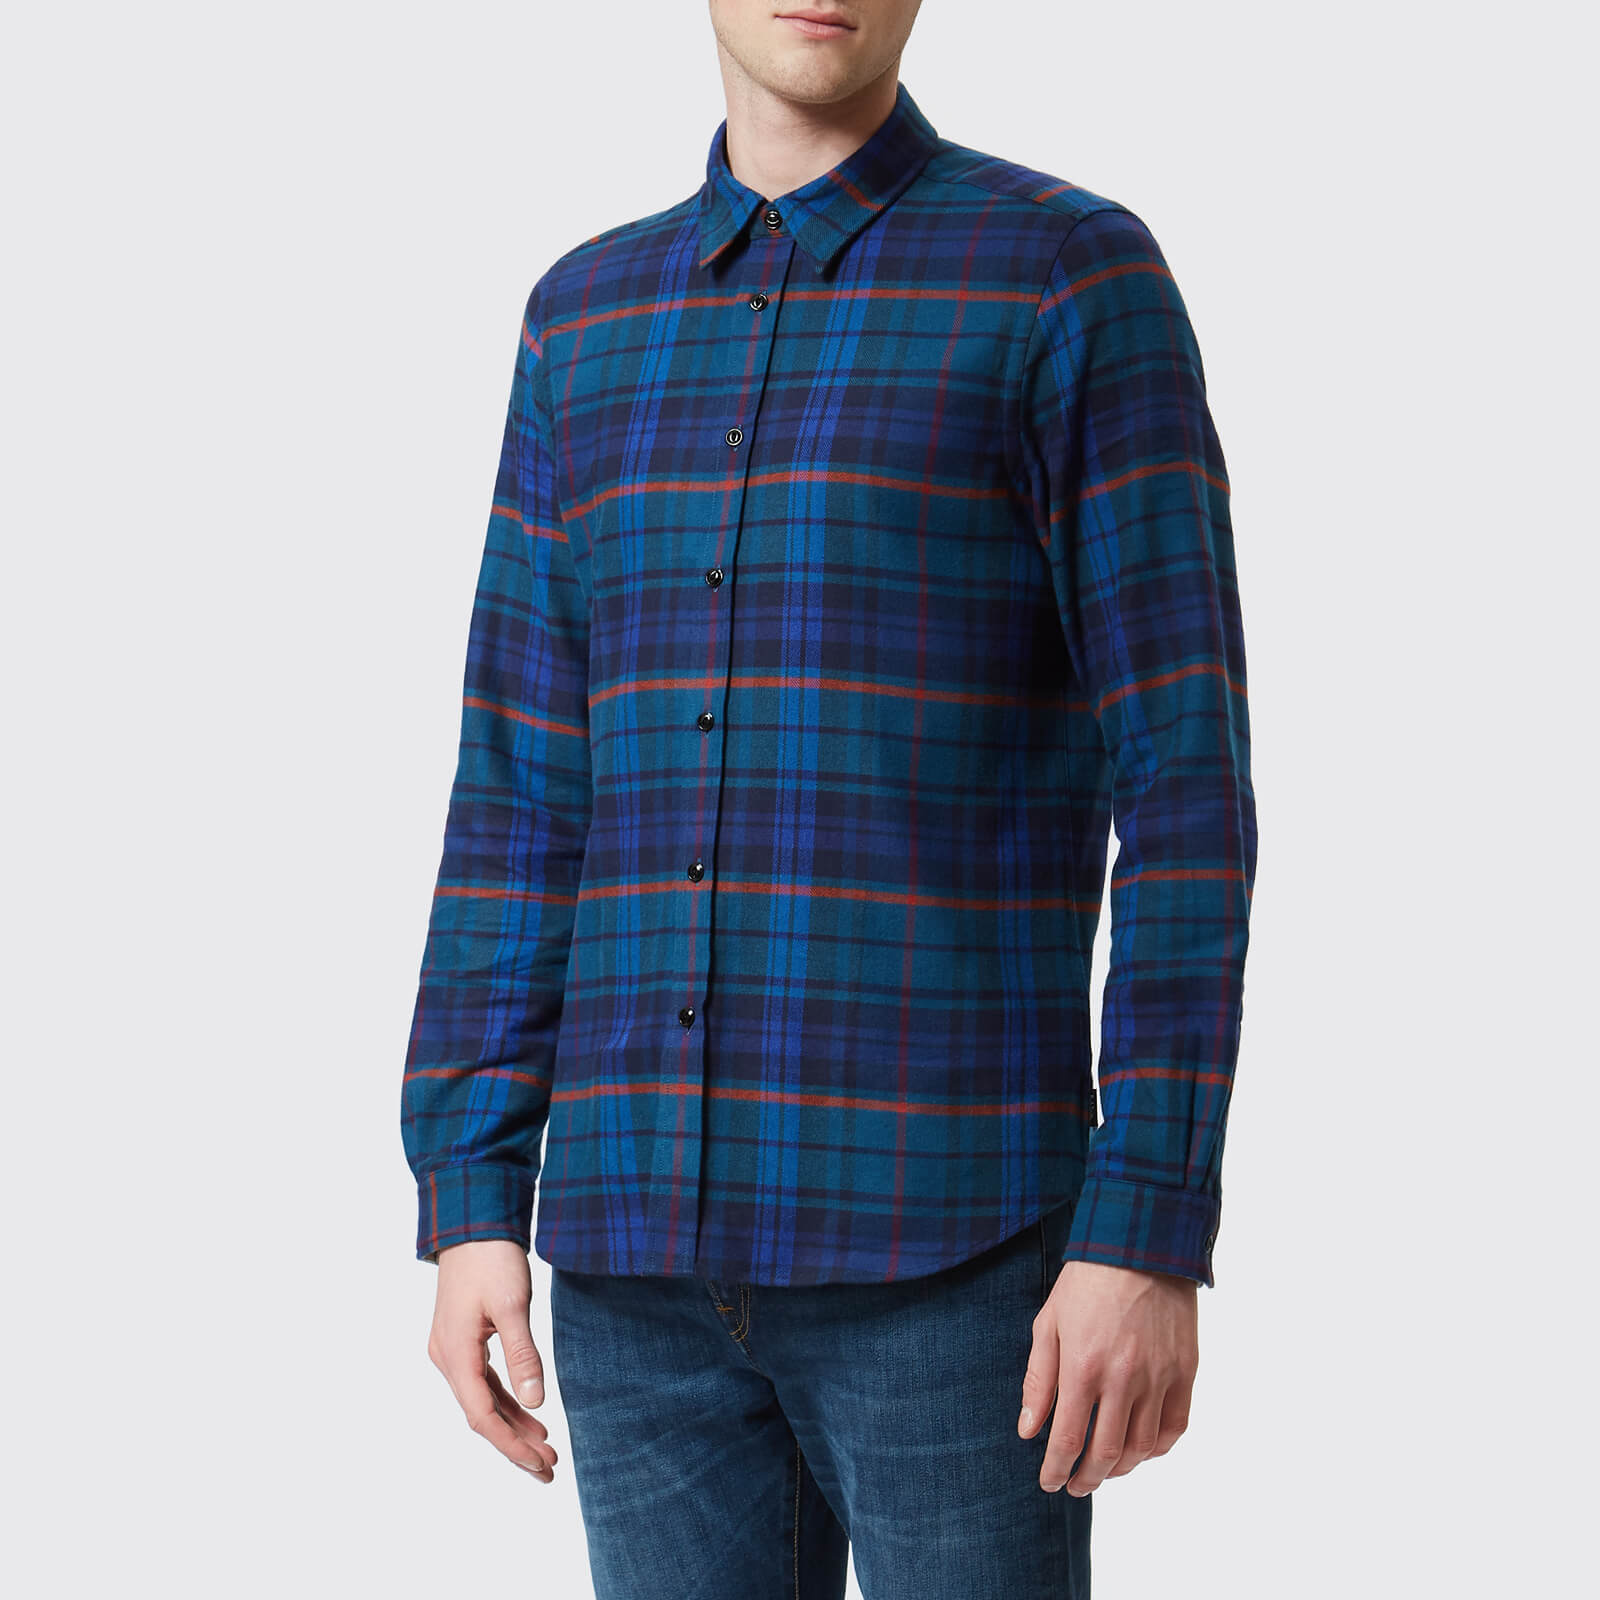 d4425014770923 PS Paul Smith Men's Tailored Fit Long Sleeve Checked Shirt - Blue - Free UK  Delivery over £50